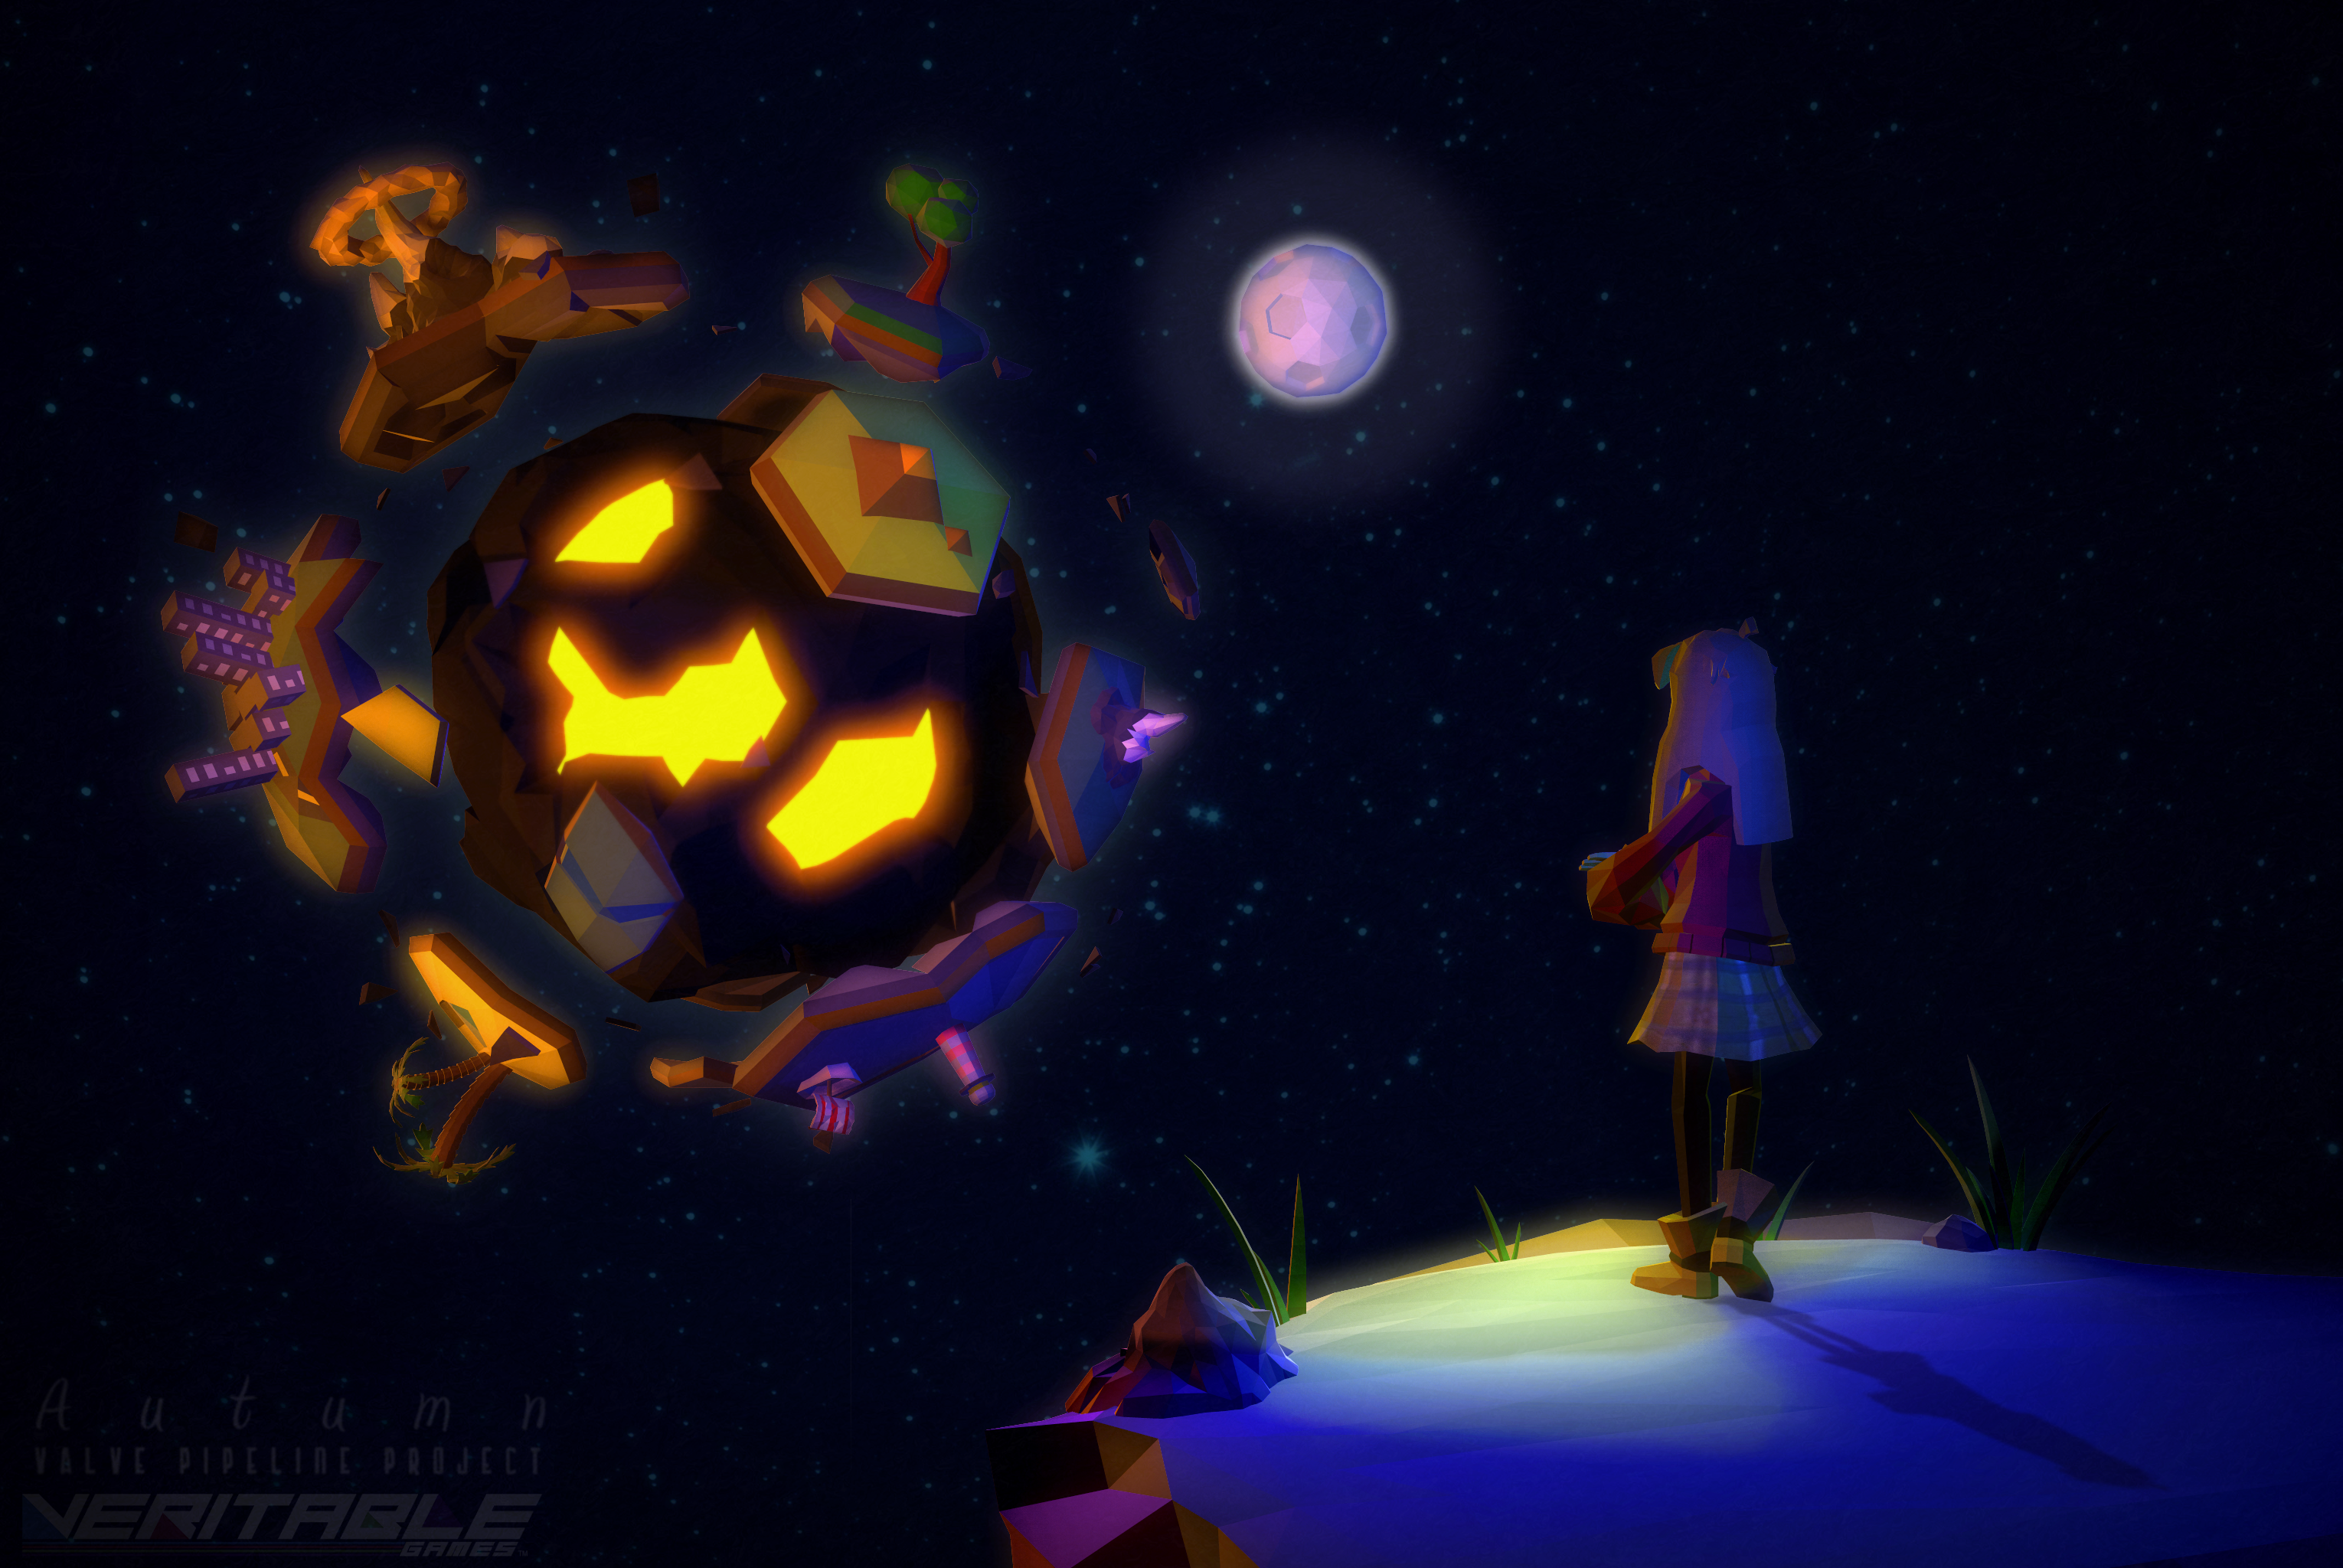 planet_orth__autumn__by_littlenorwegians-d8bvpez.png